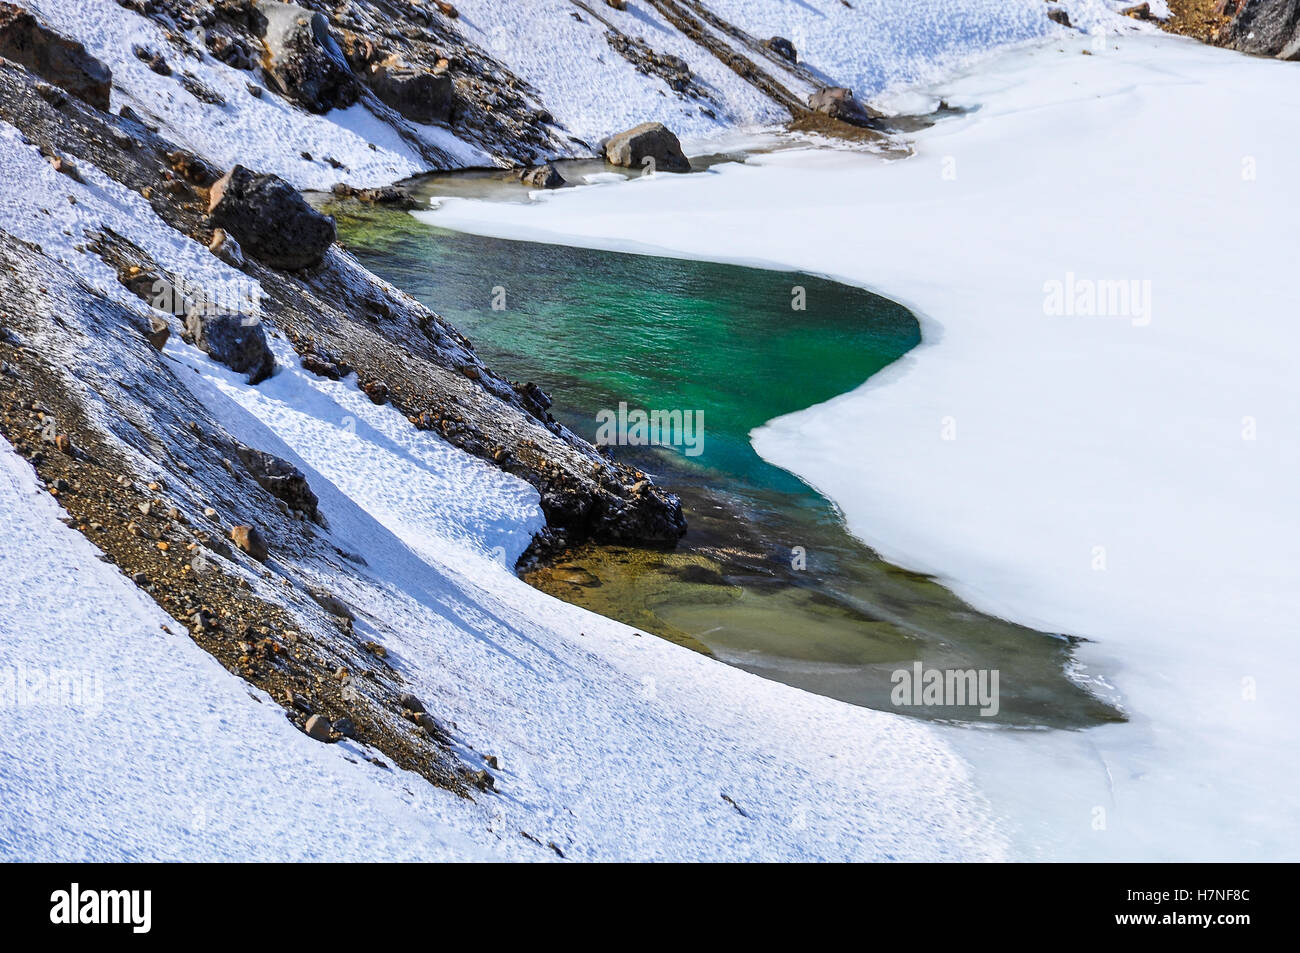 Colorful Emerald Lakes in the winter Tongariro Alpine Crossing, New Zealand - Stock Image